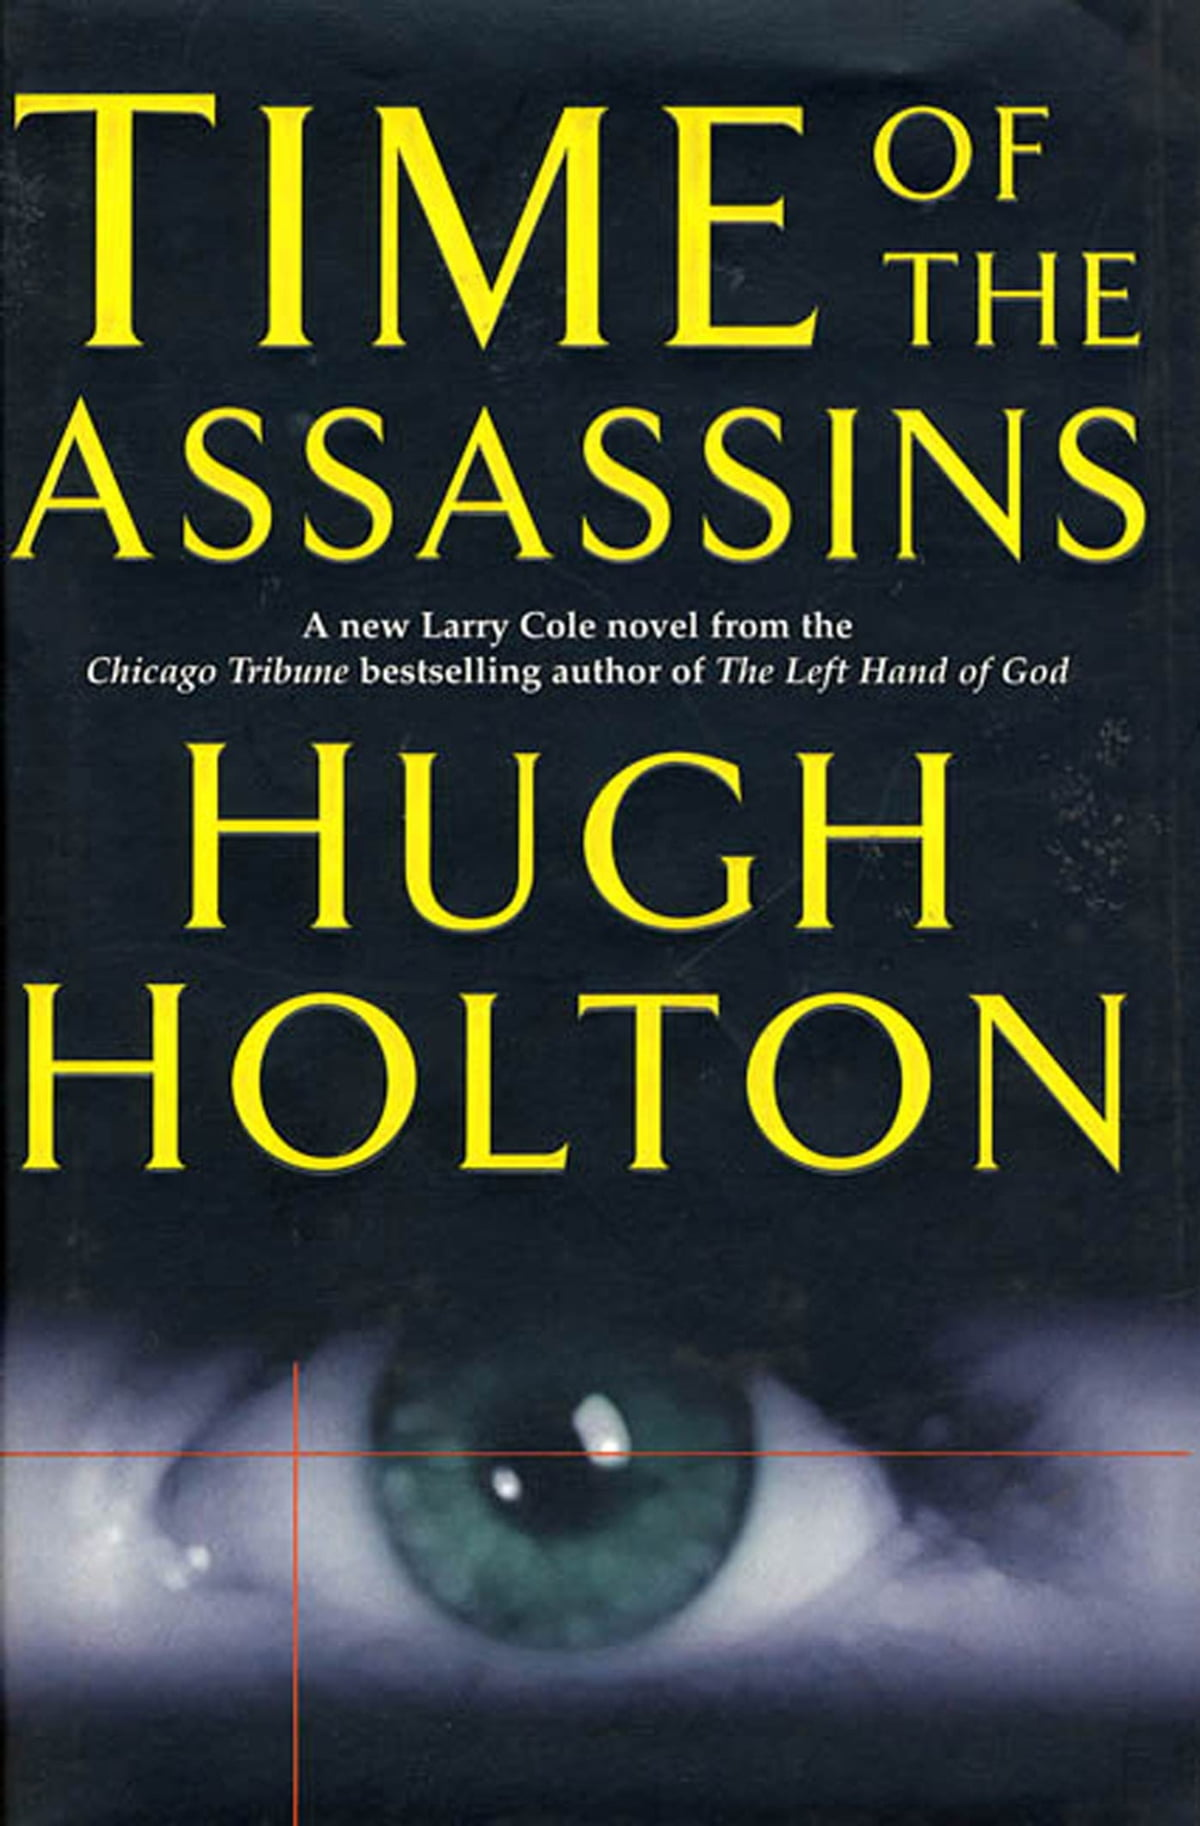 Time of the Assassins eBook by Hugh Holton - 9781466826687 | Rakuten Kobo